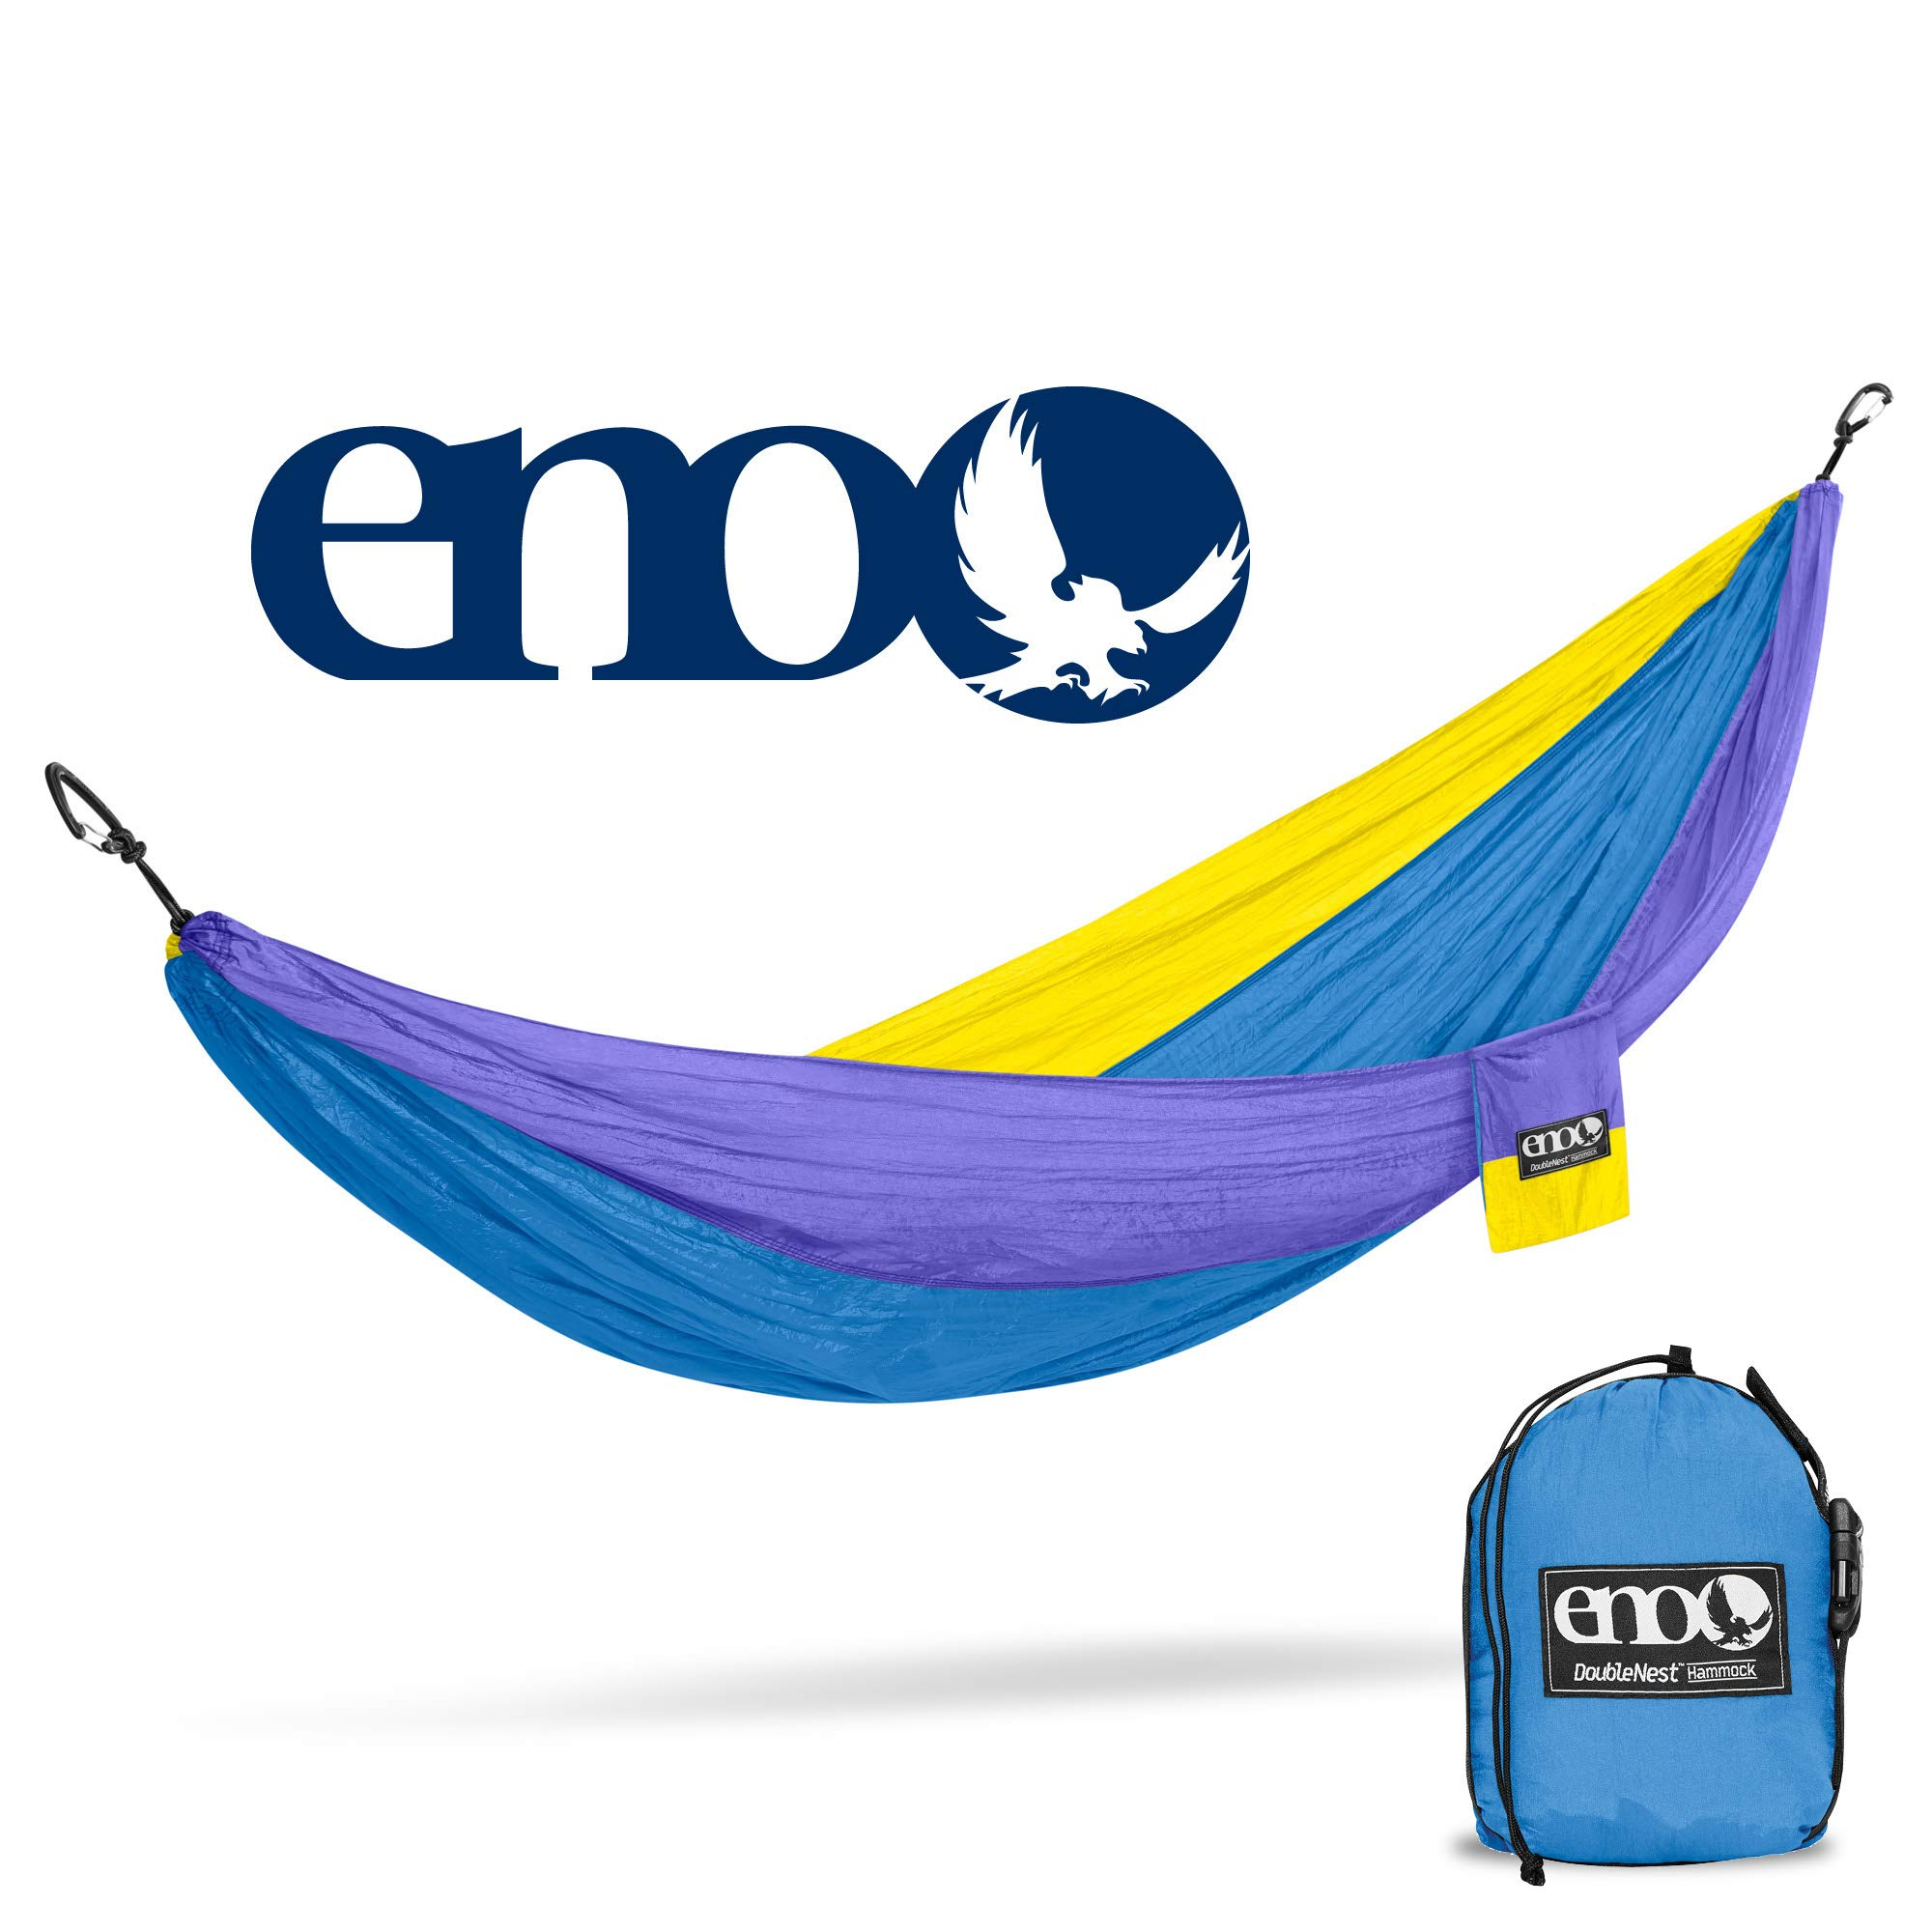 ENO - Eagles Nest Outfitters DoubleNest Hammock, Portable Hammock for Two, Yellow/Teal/Purple